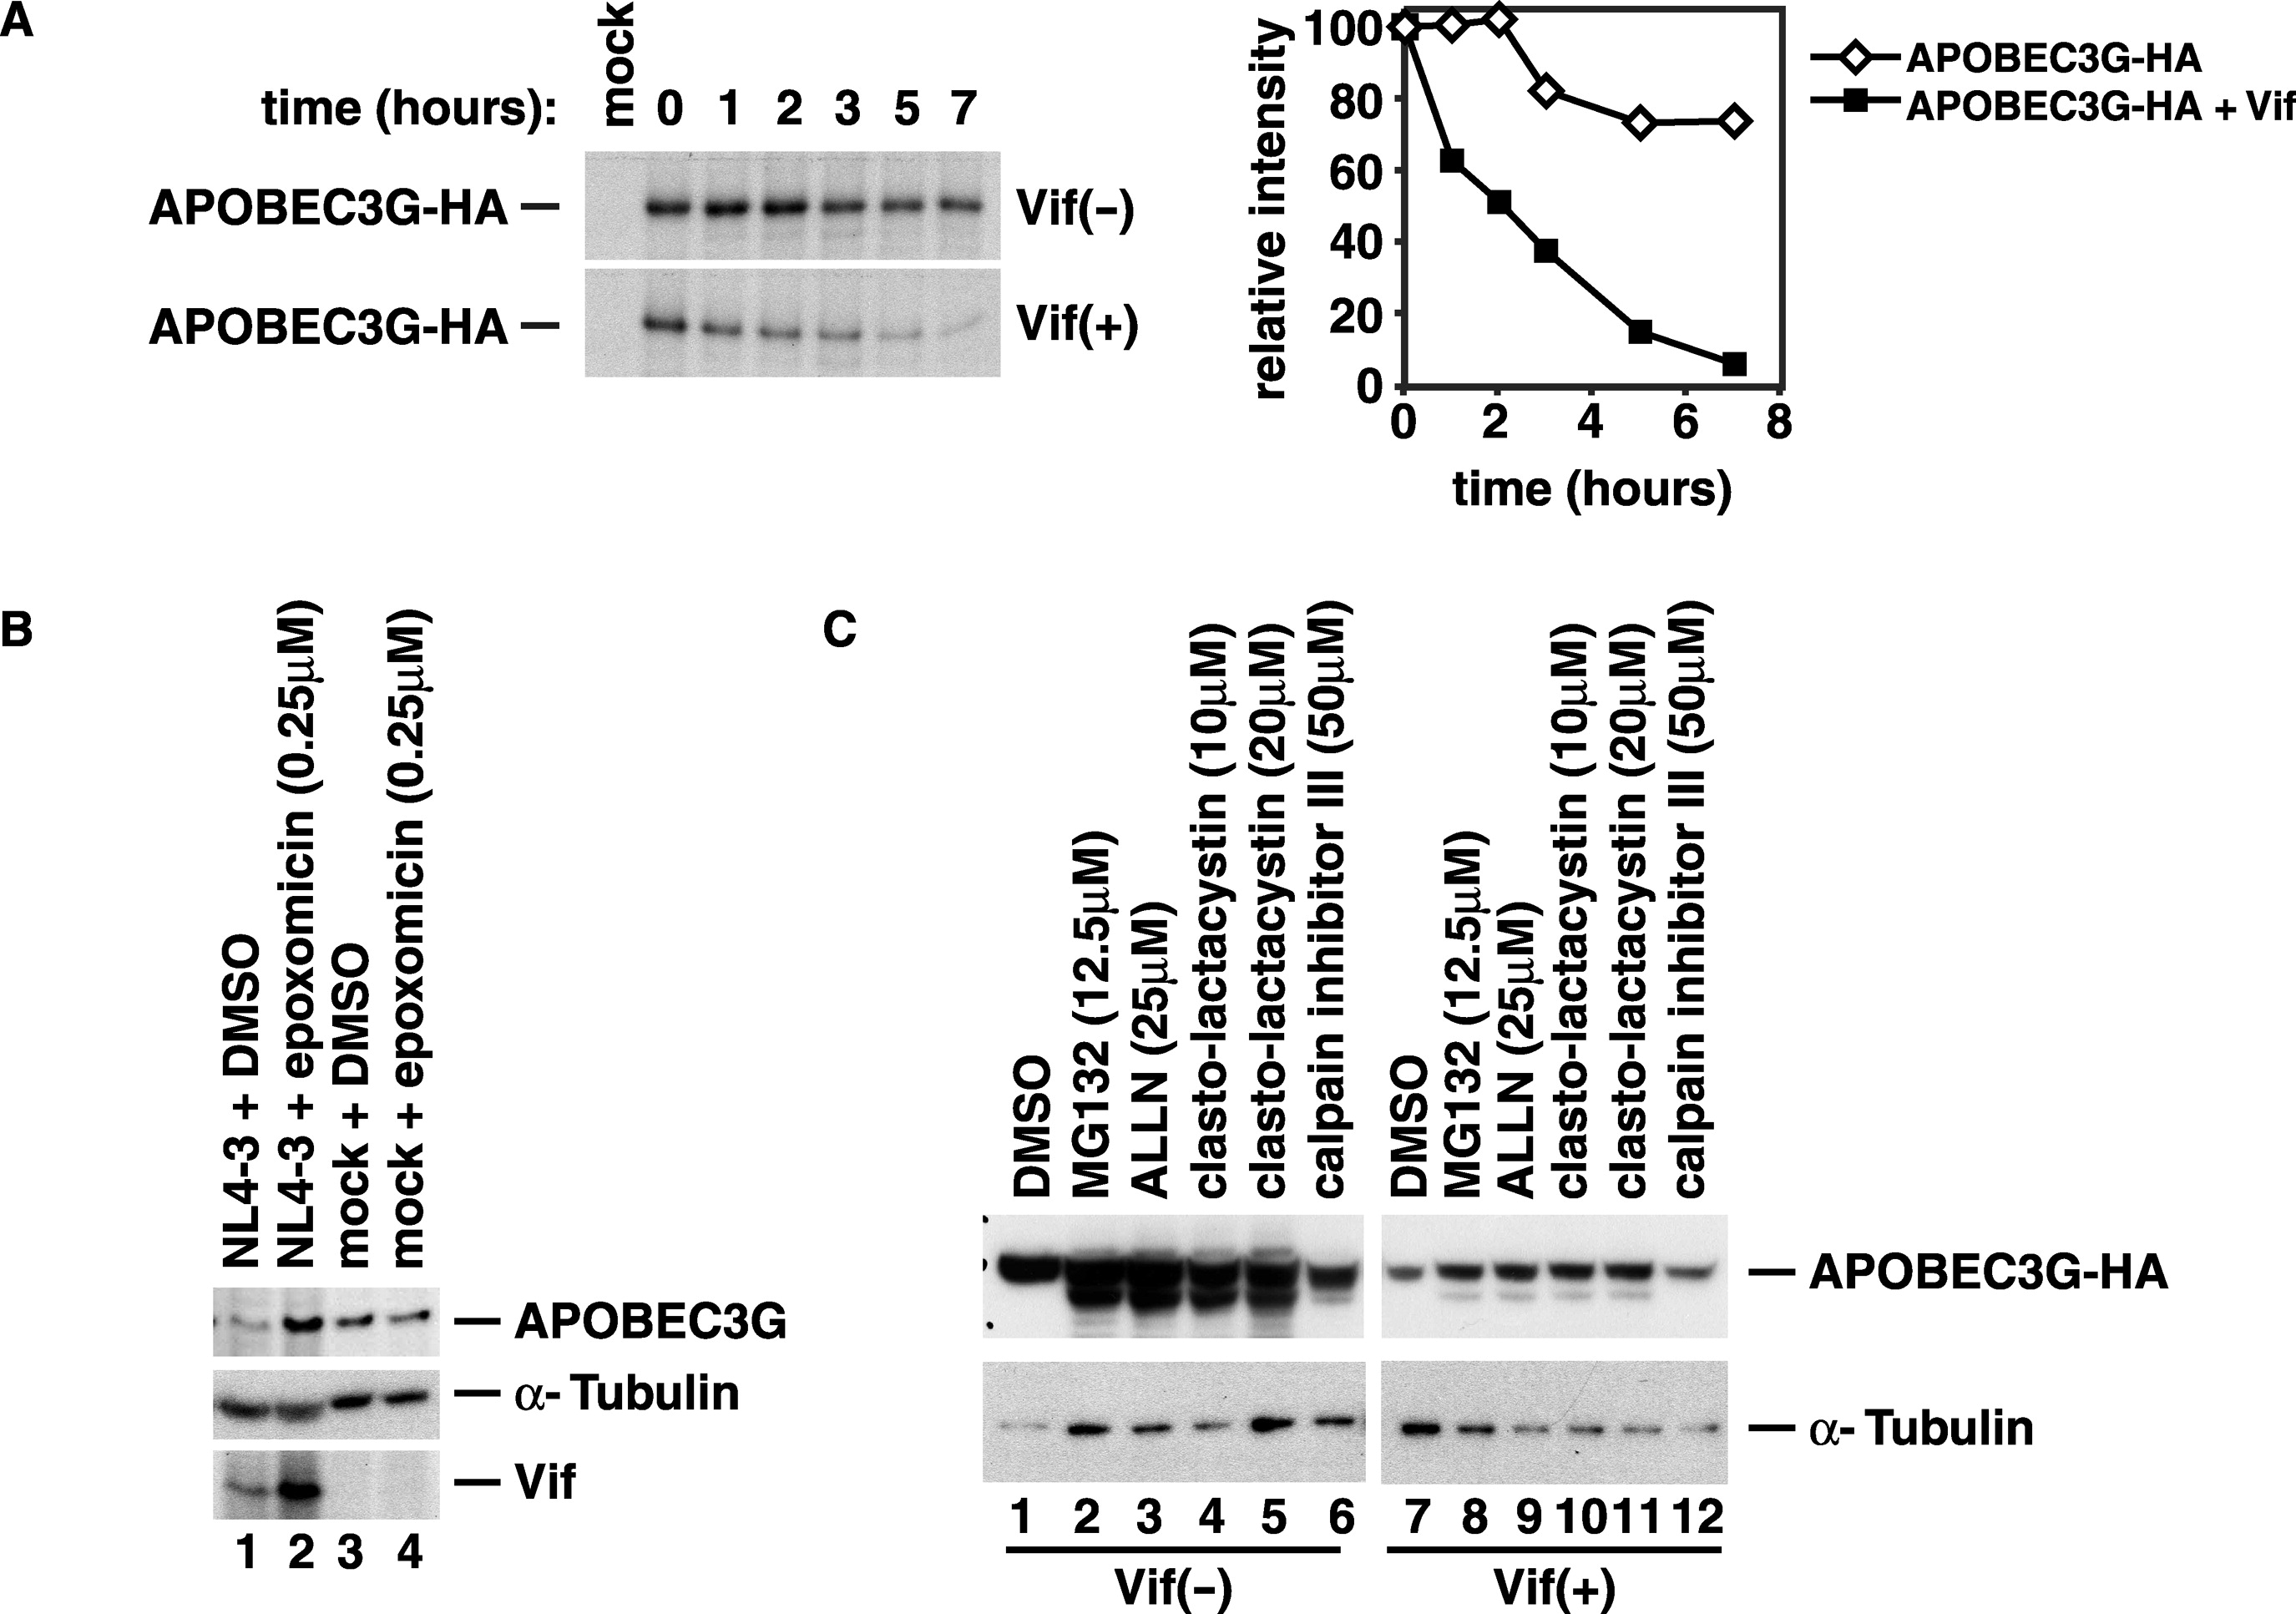 Hiv 1 Vif Blocks The Antiviral Activity Of Apobec3g By Impairing Both Its Translation And